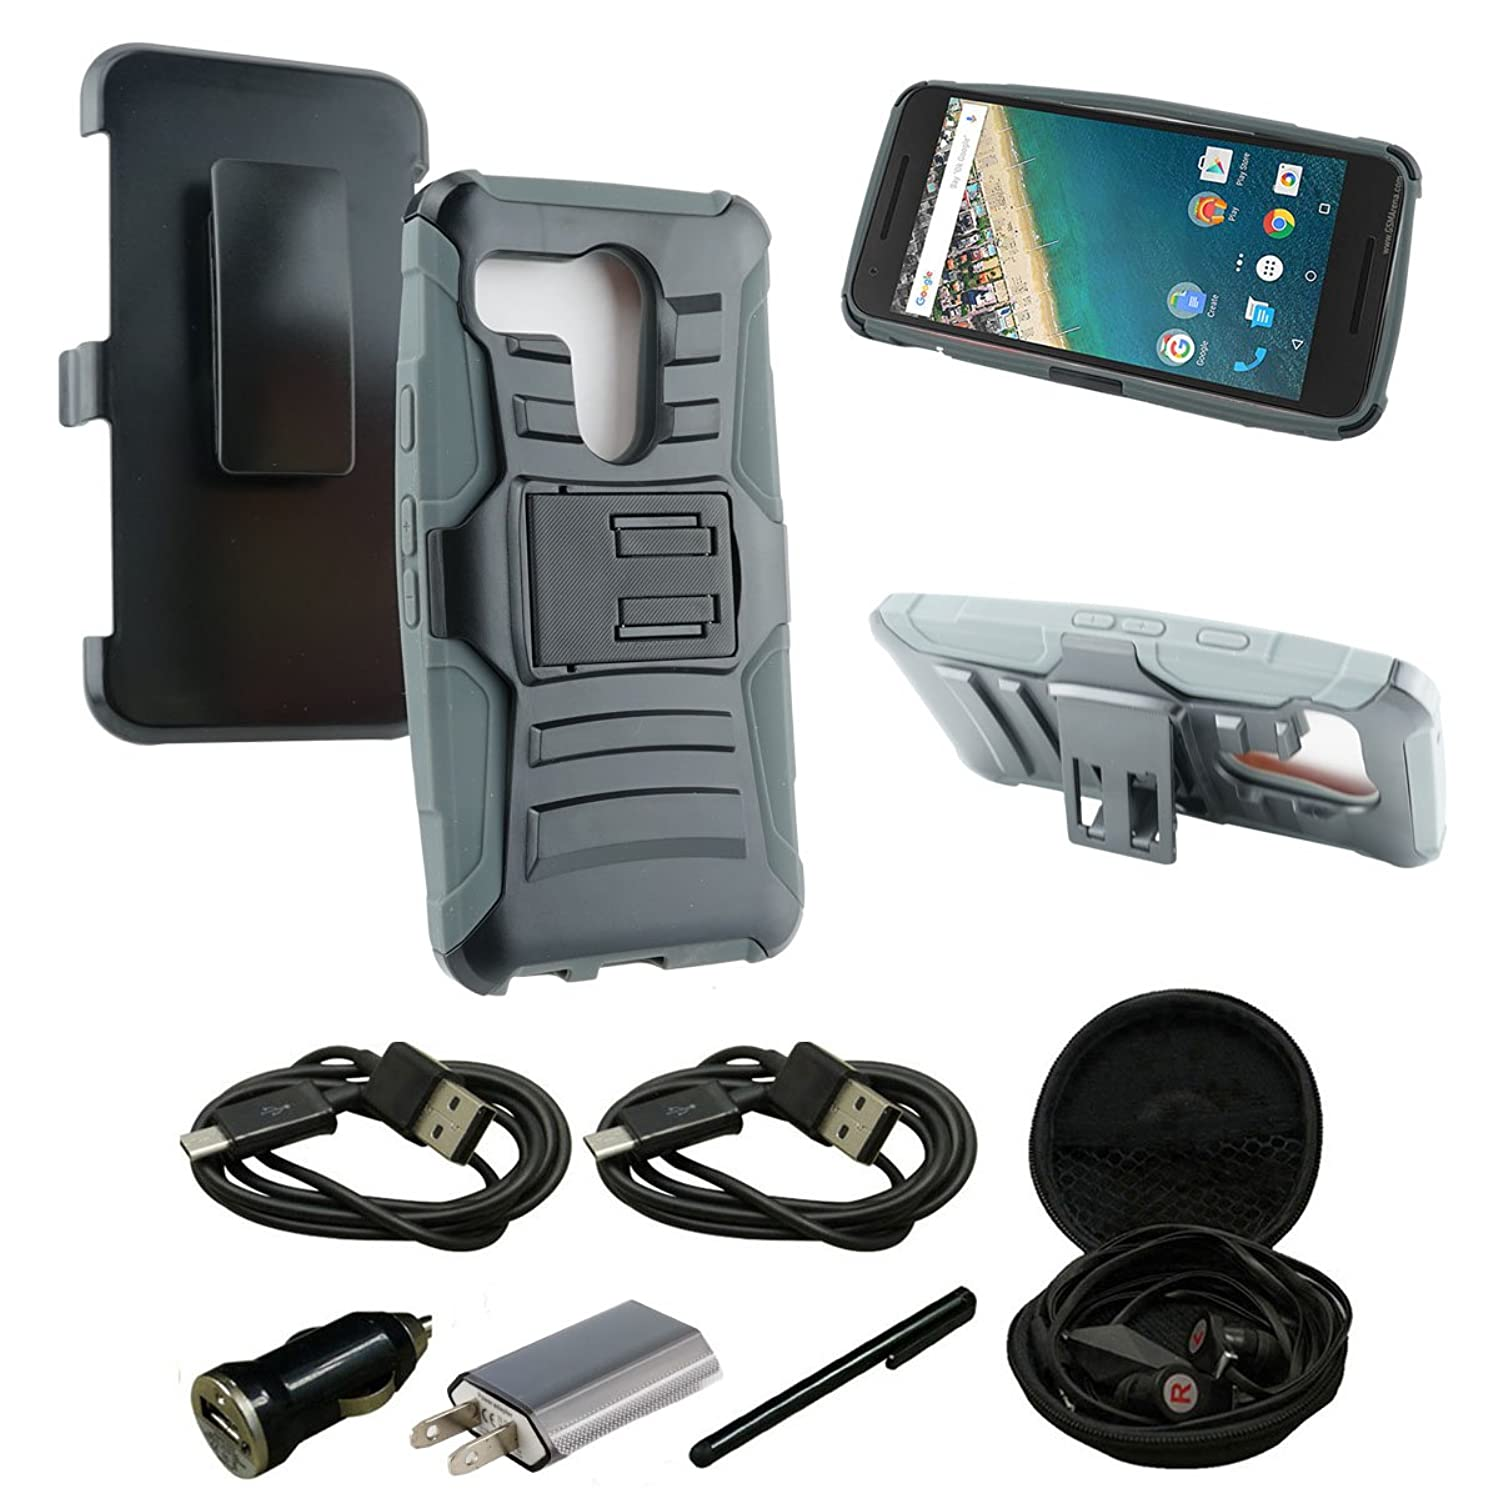 Nexus 5X Case, Mestechcorp [Heavy Duty] Armor Holster Defender Full Body Protective Hybrid Case Cover with Kickstand & Belt Swivel Clip for LG Nexus 5X - Includes Accessories (H Gray)